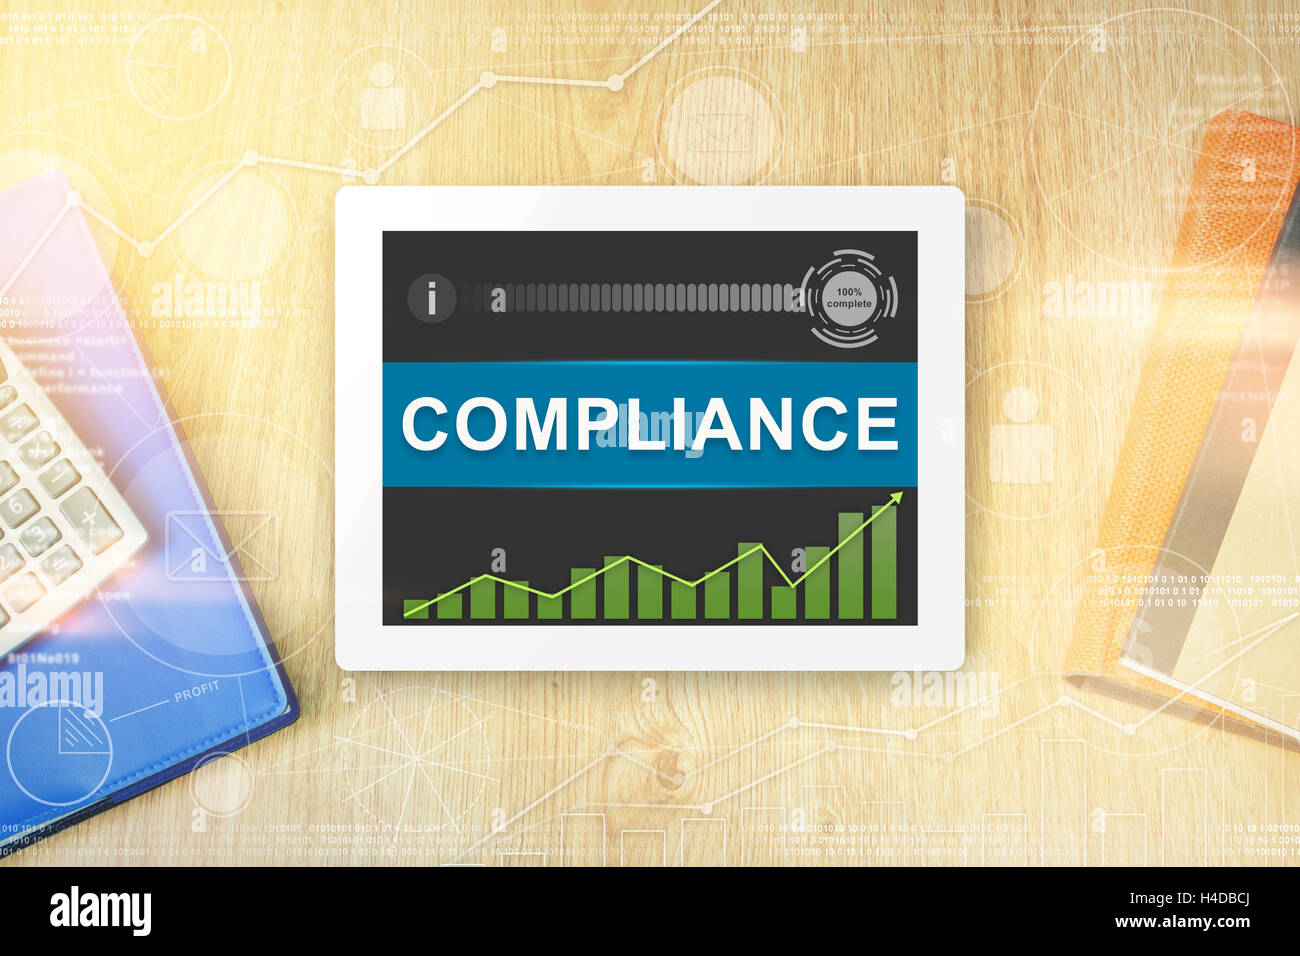 compliance word on tablet with soft light vintage effect - Stock Image